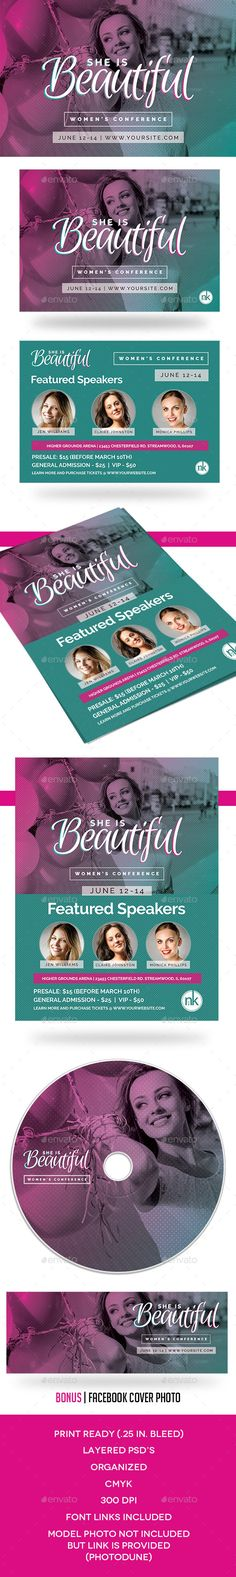 Multipurpose Flyer Designs Logos, Print and Modern - conference flyer template